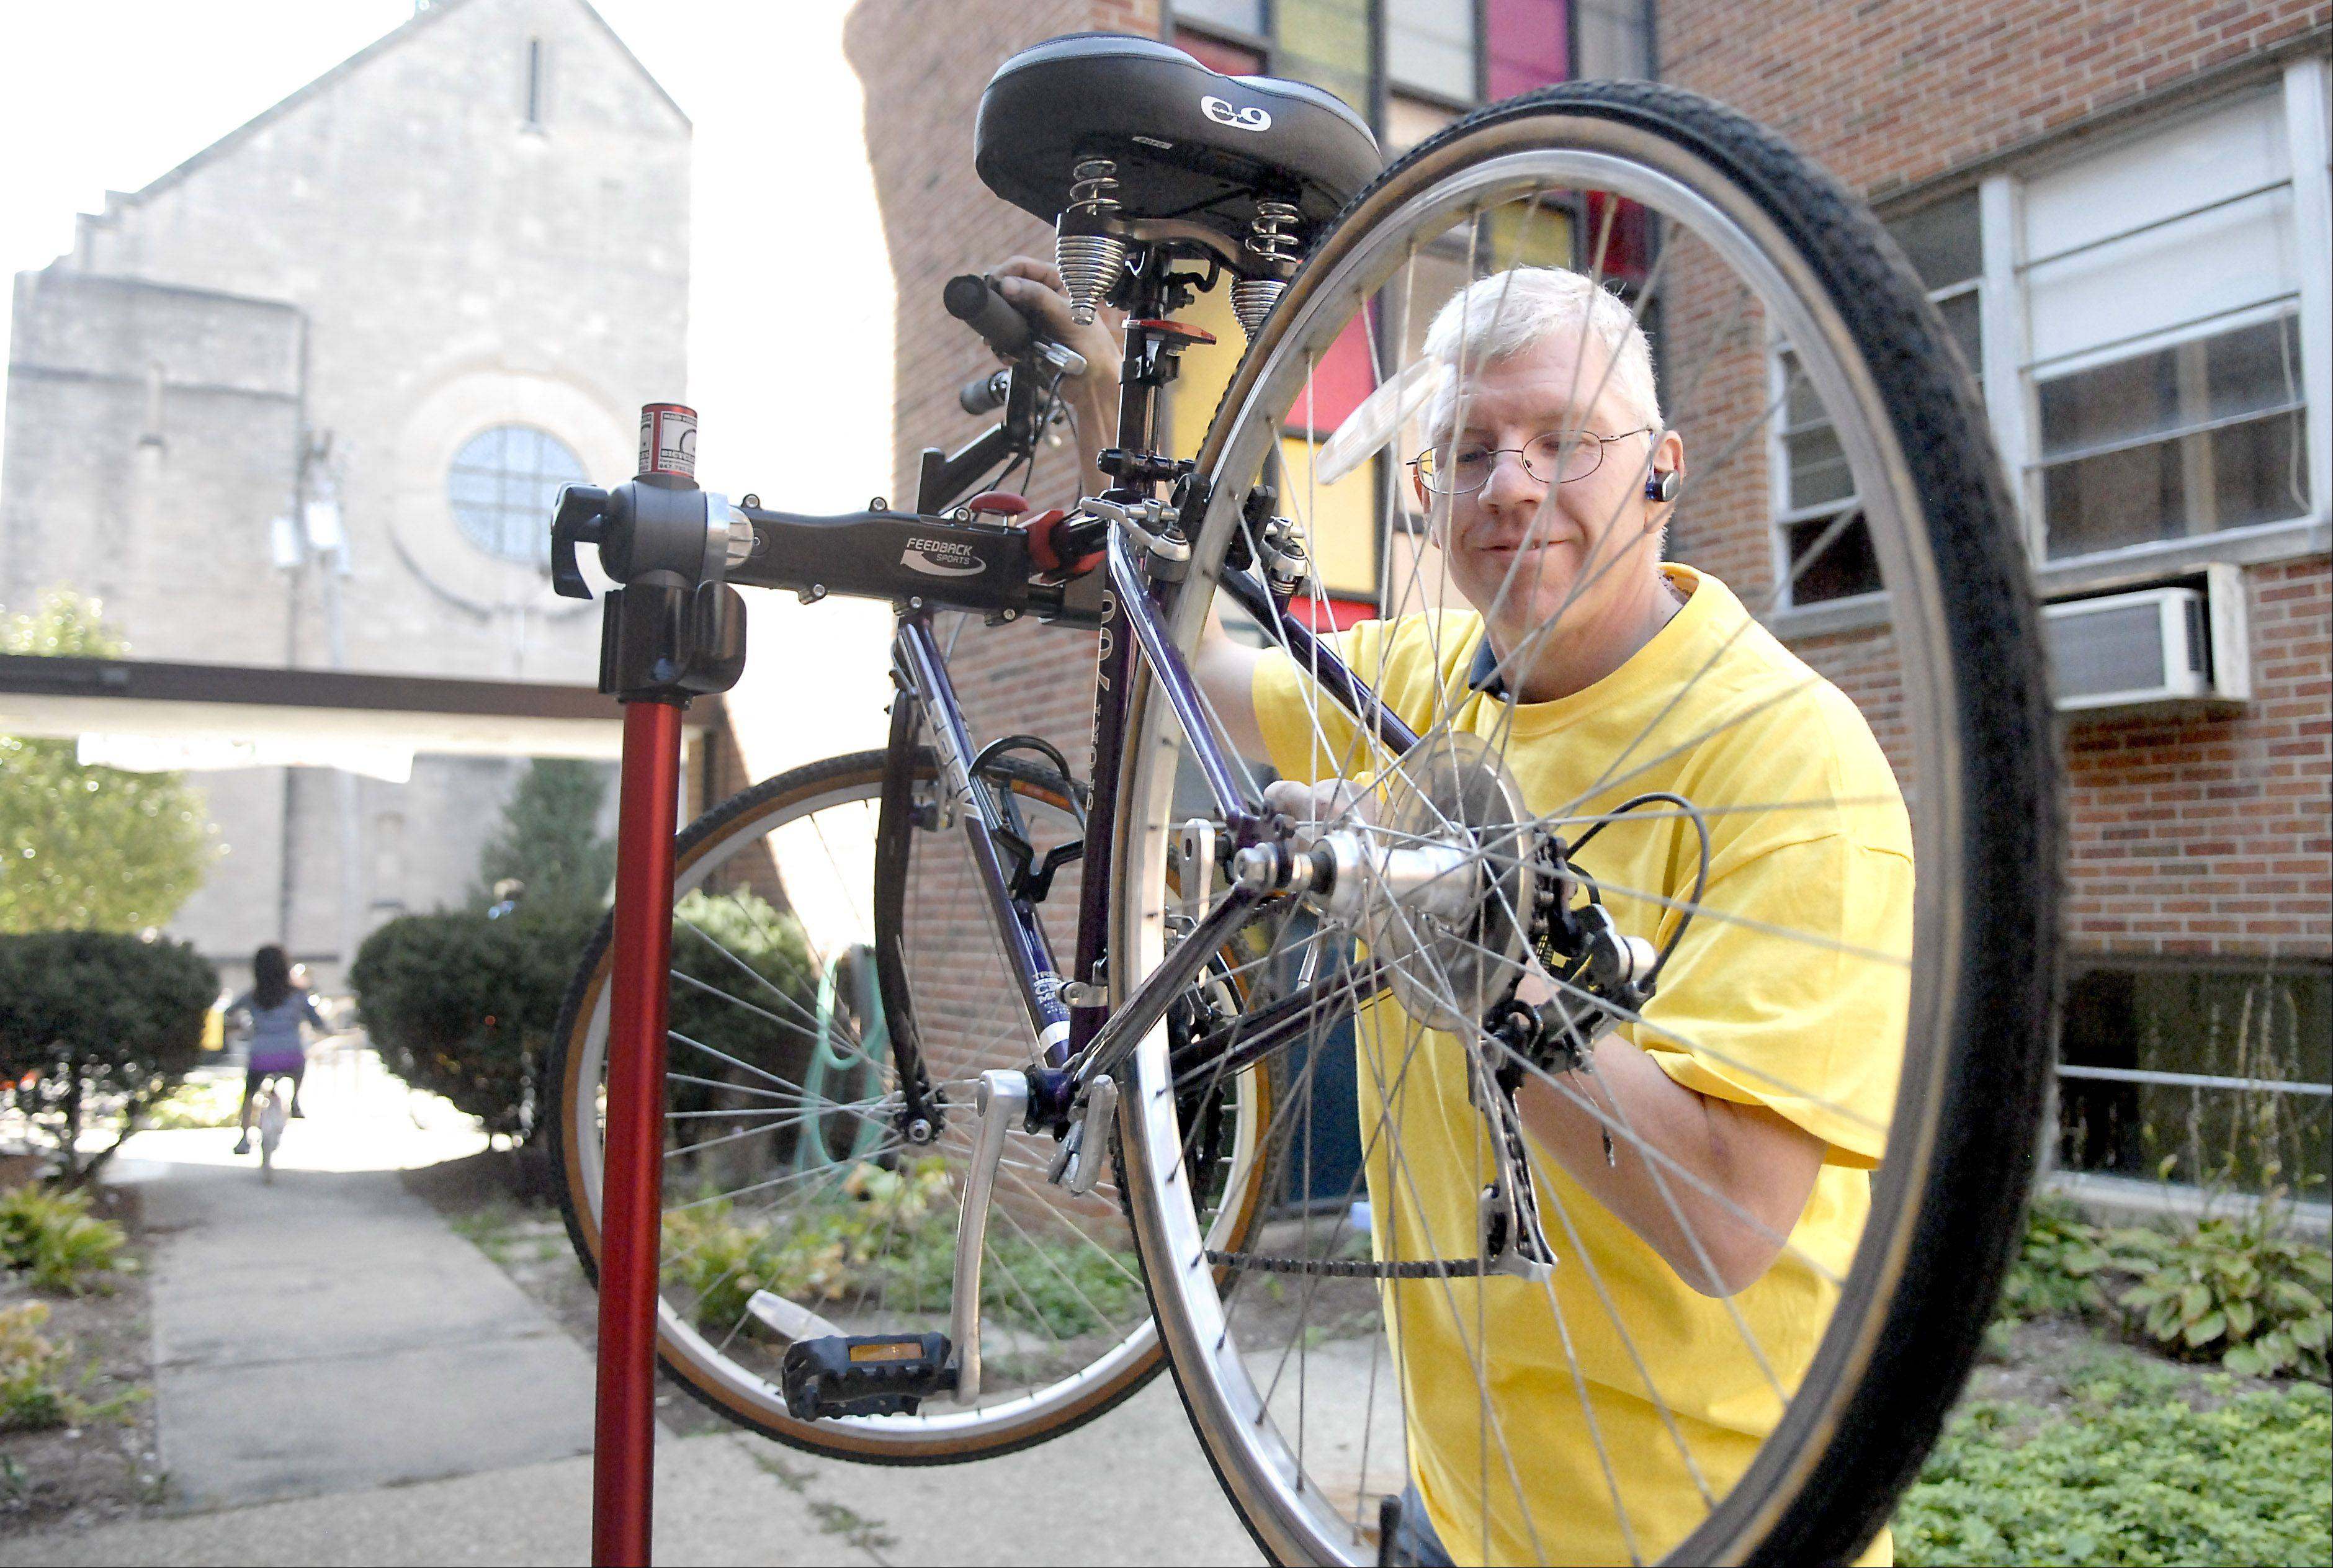 Volunteer Jeff Bratko of East Dundee gets a bike chain running smoothly in the courtyard of Vineyard Church at the Love Elgin Day event on Saturday, September 29. This was the second year bike enthusiast Bratko, who is a member of the Vineyard Church of Elgin, has helped at the event.